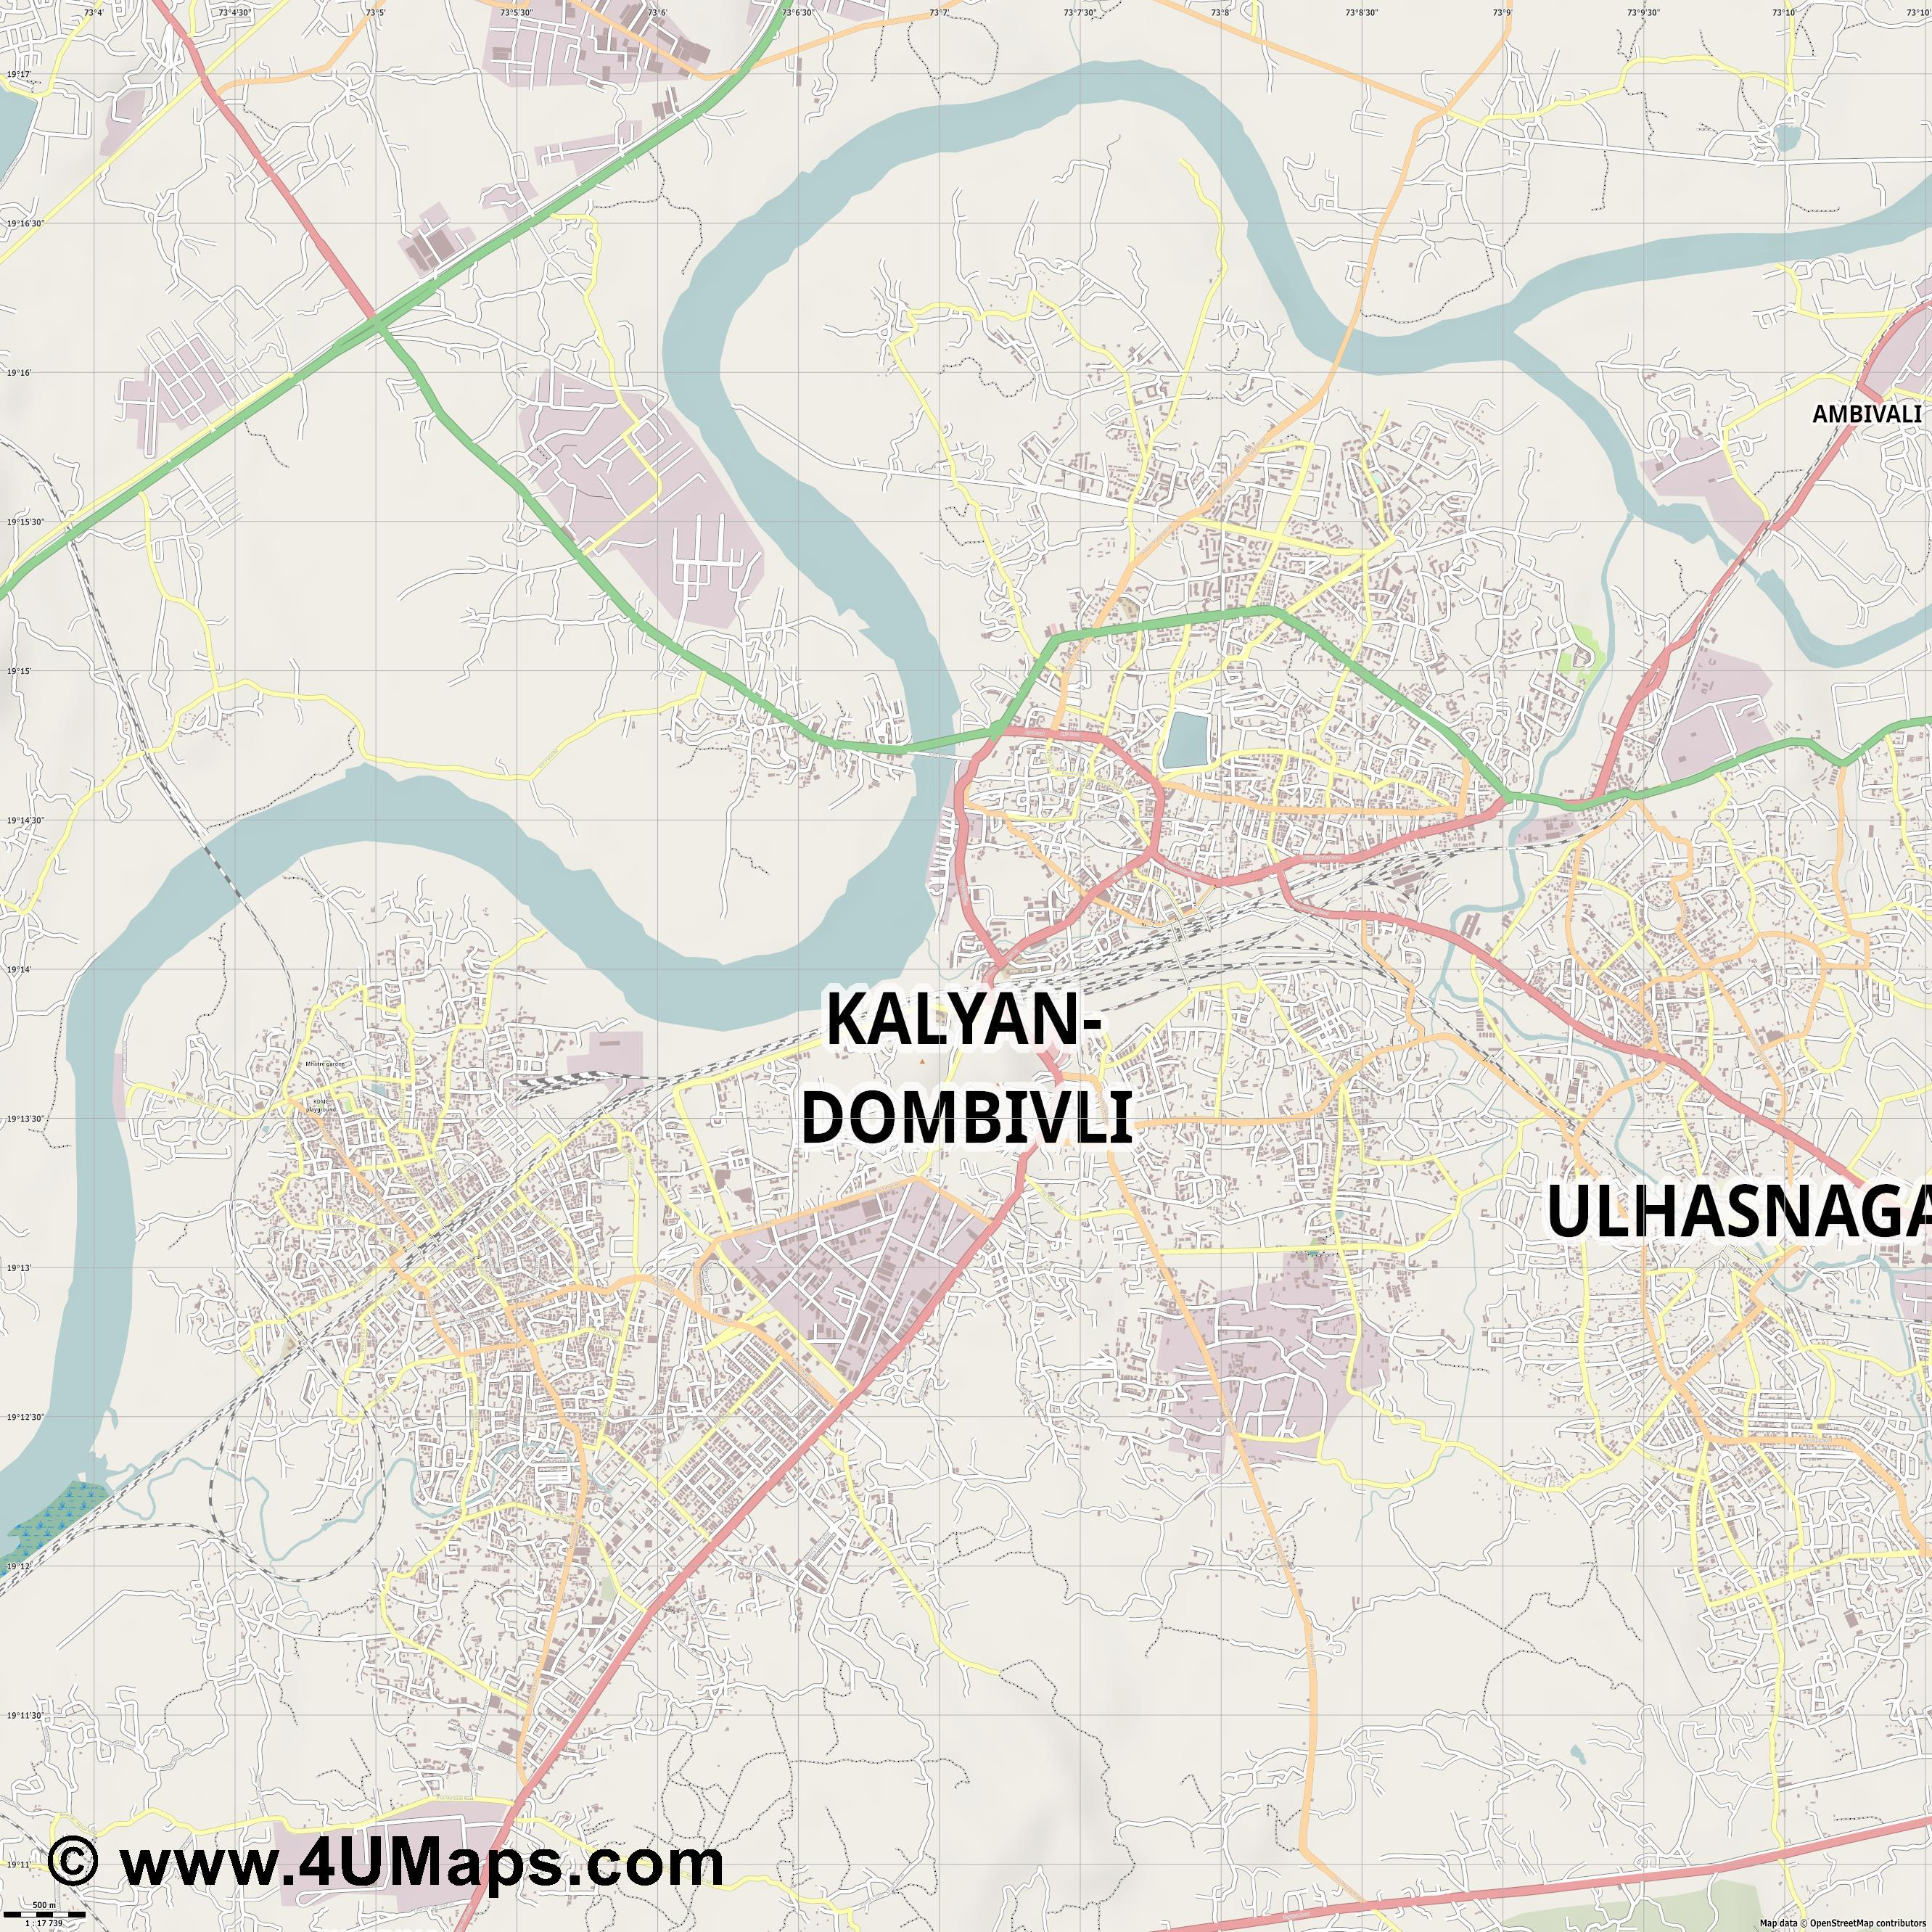 Kalyan Dombivali  jpg ultra high detail preview vector city map